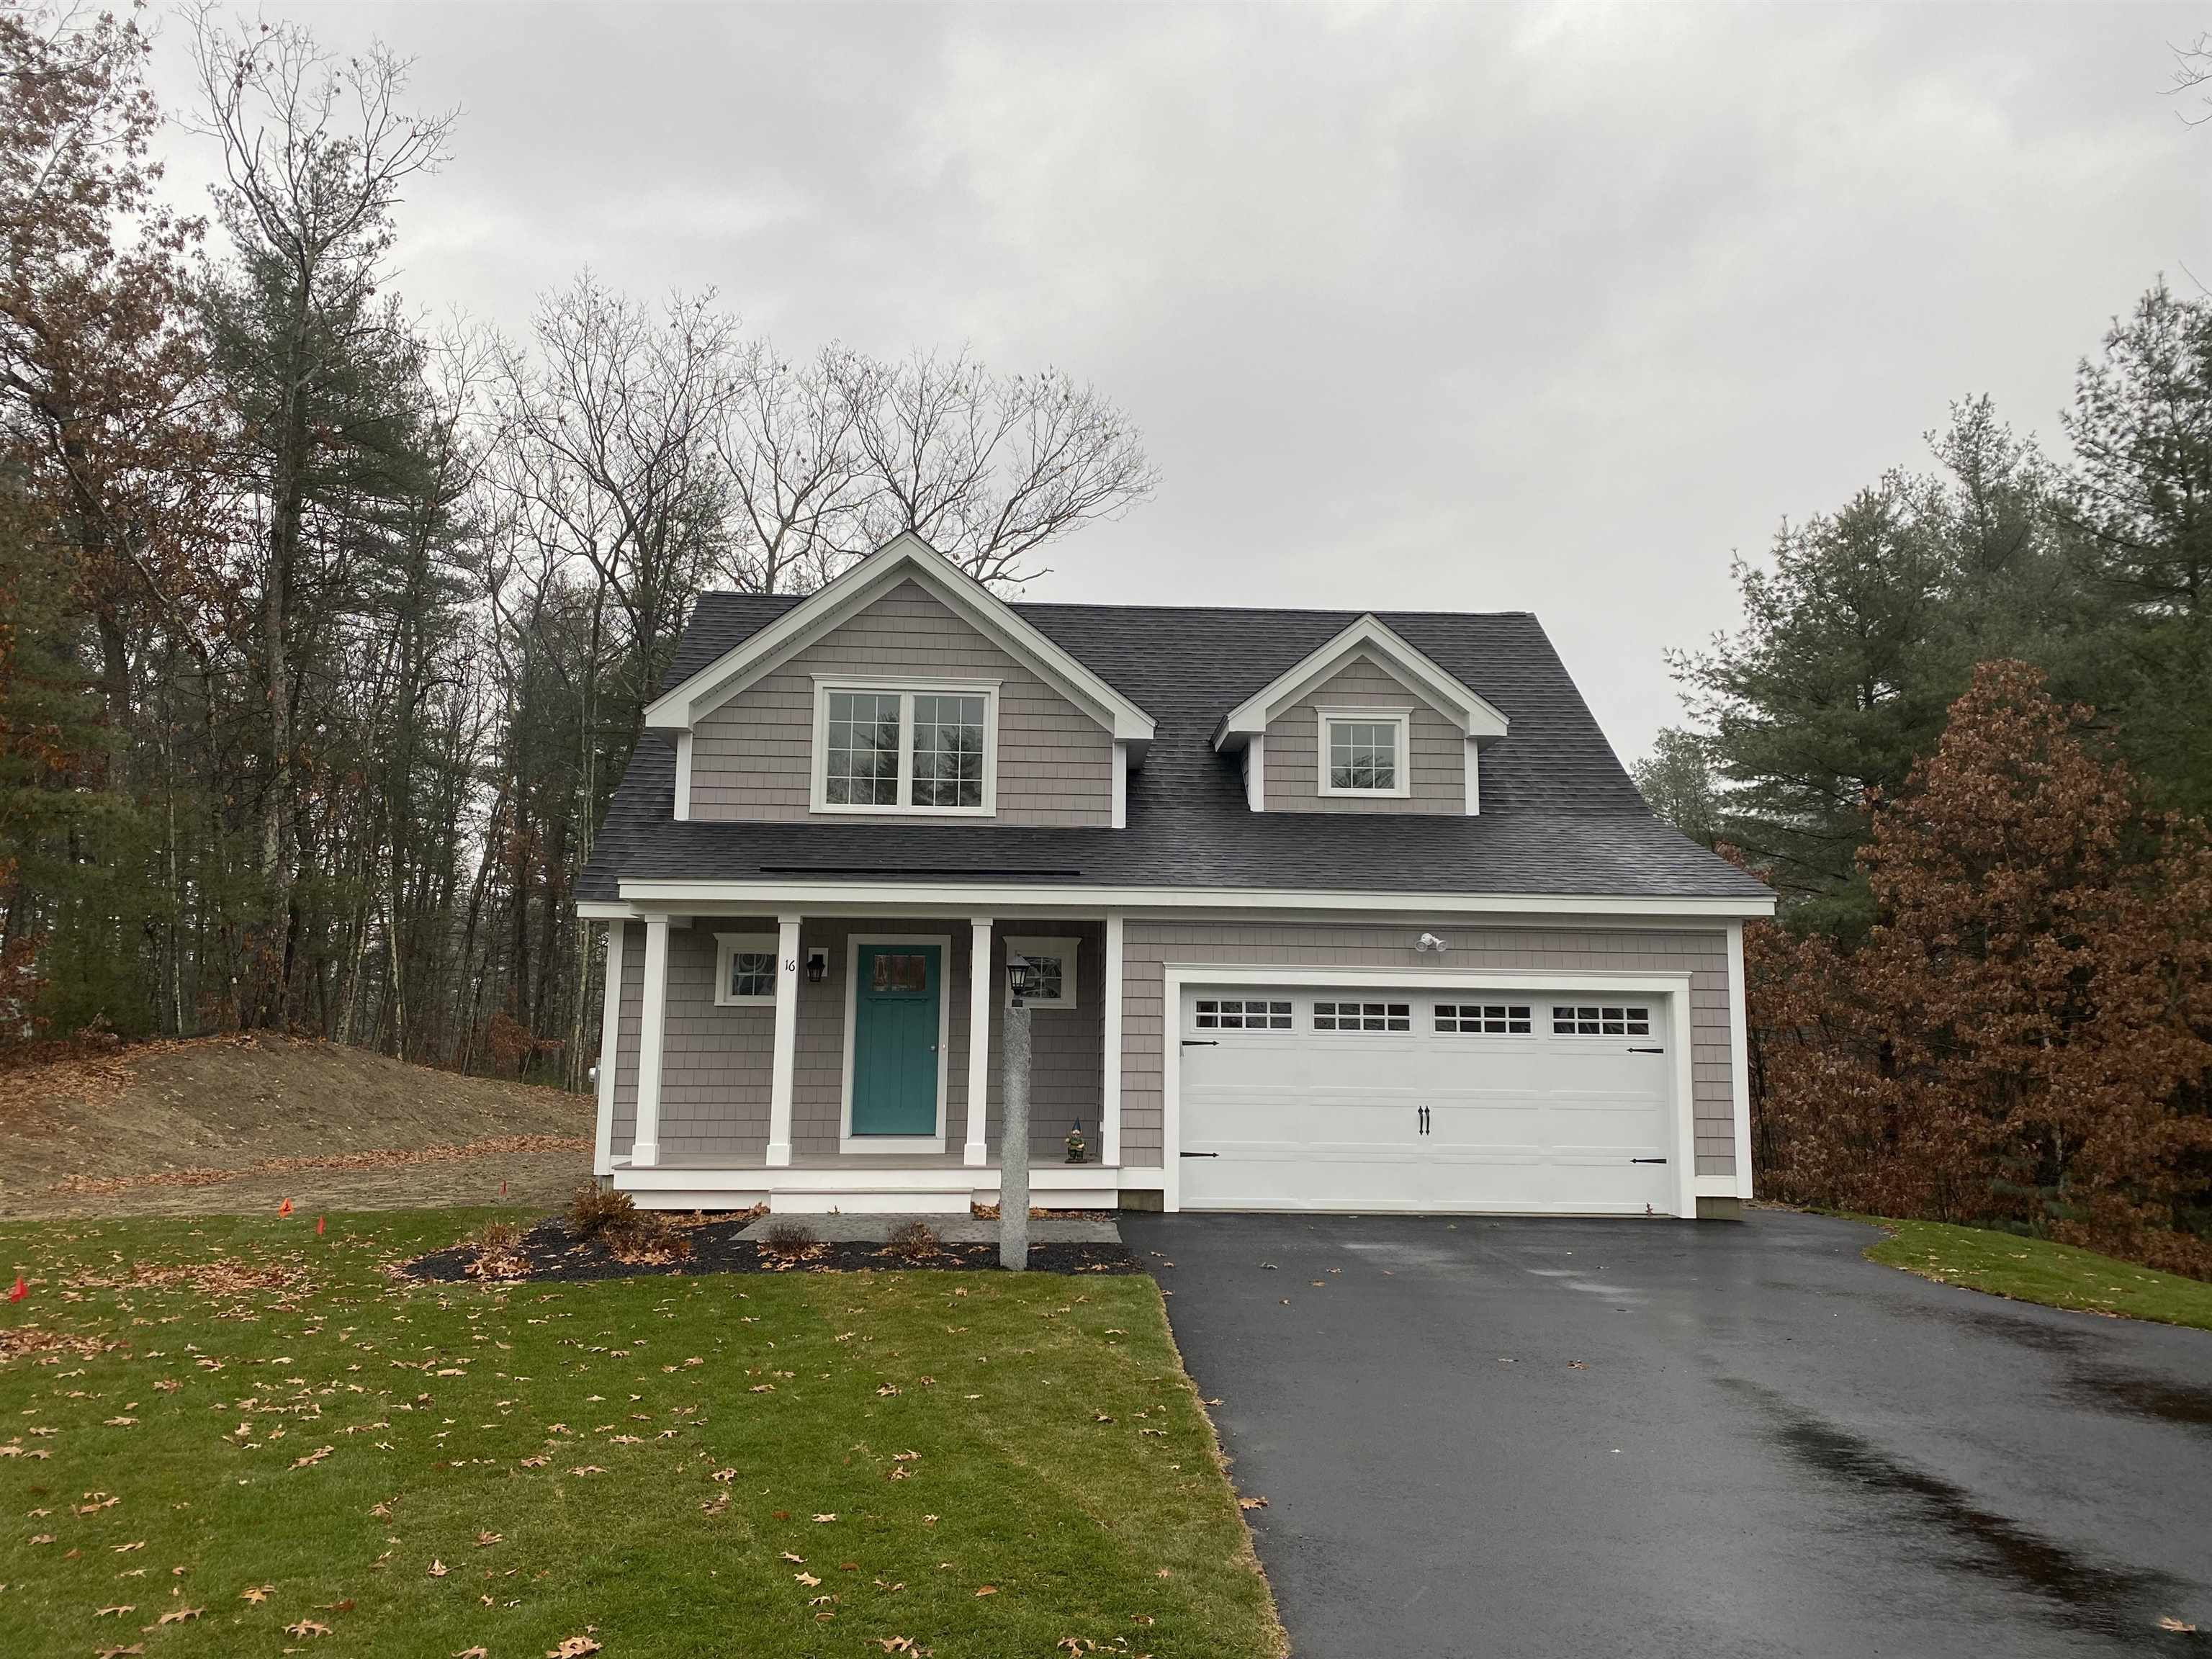 Photo of Lot 11 Lorden Commons Londonderry NH 03053